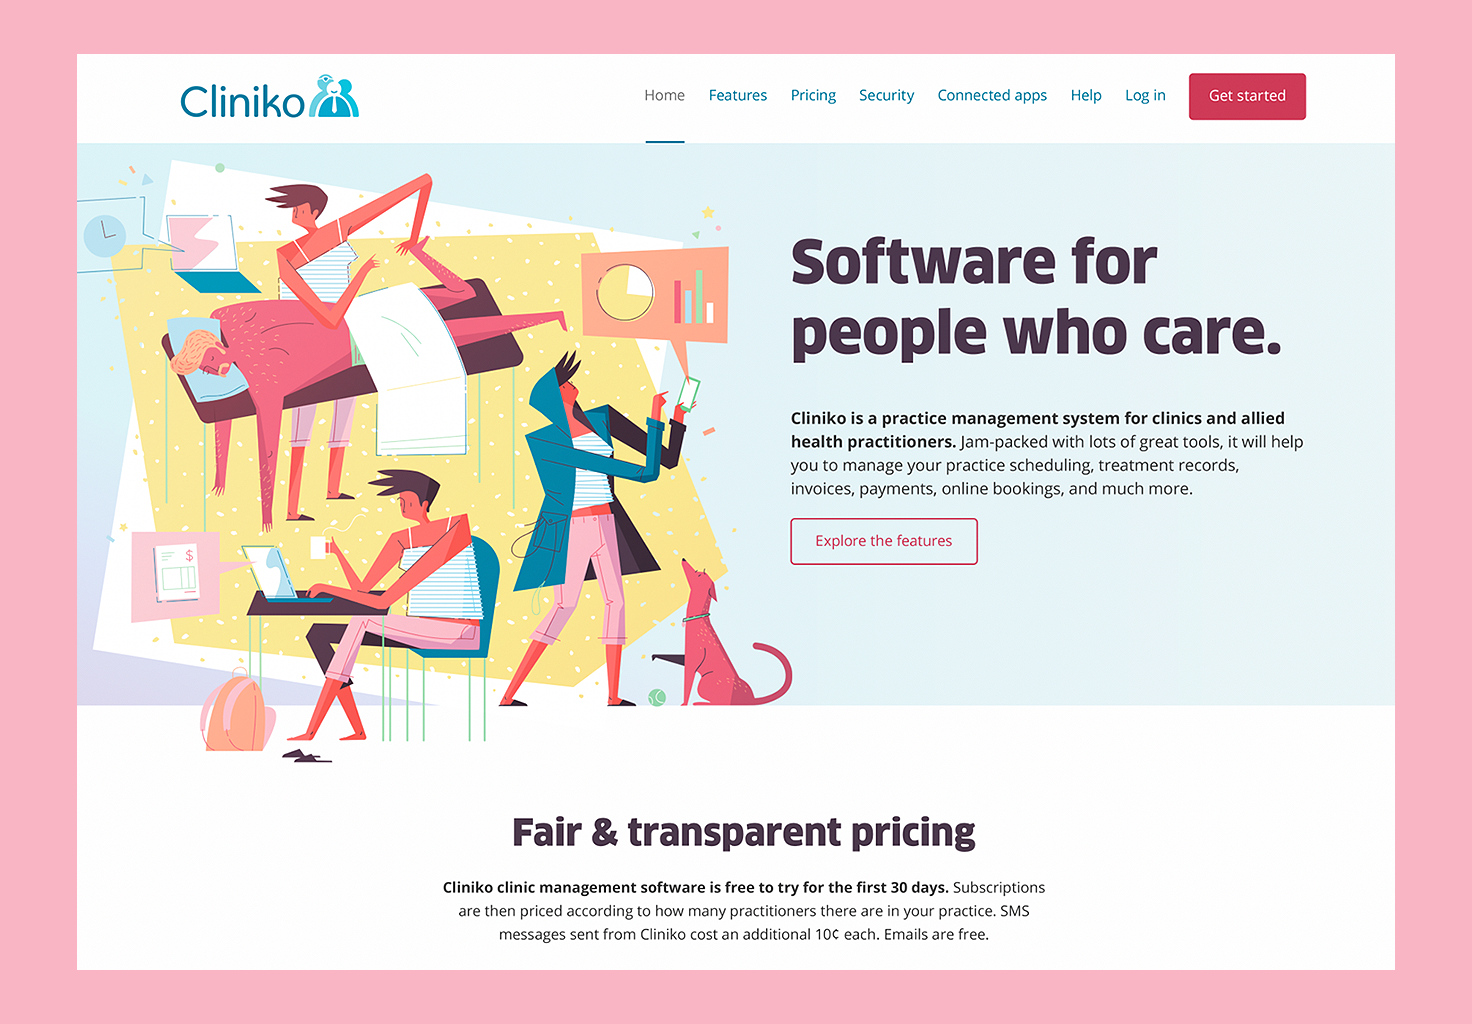 An image showing a screenshot of the redesigned Cliniko website.